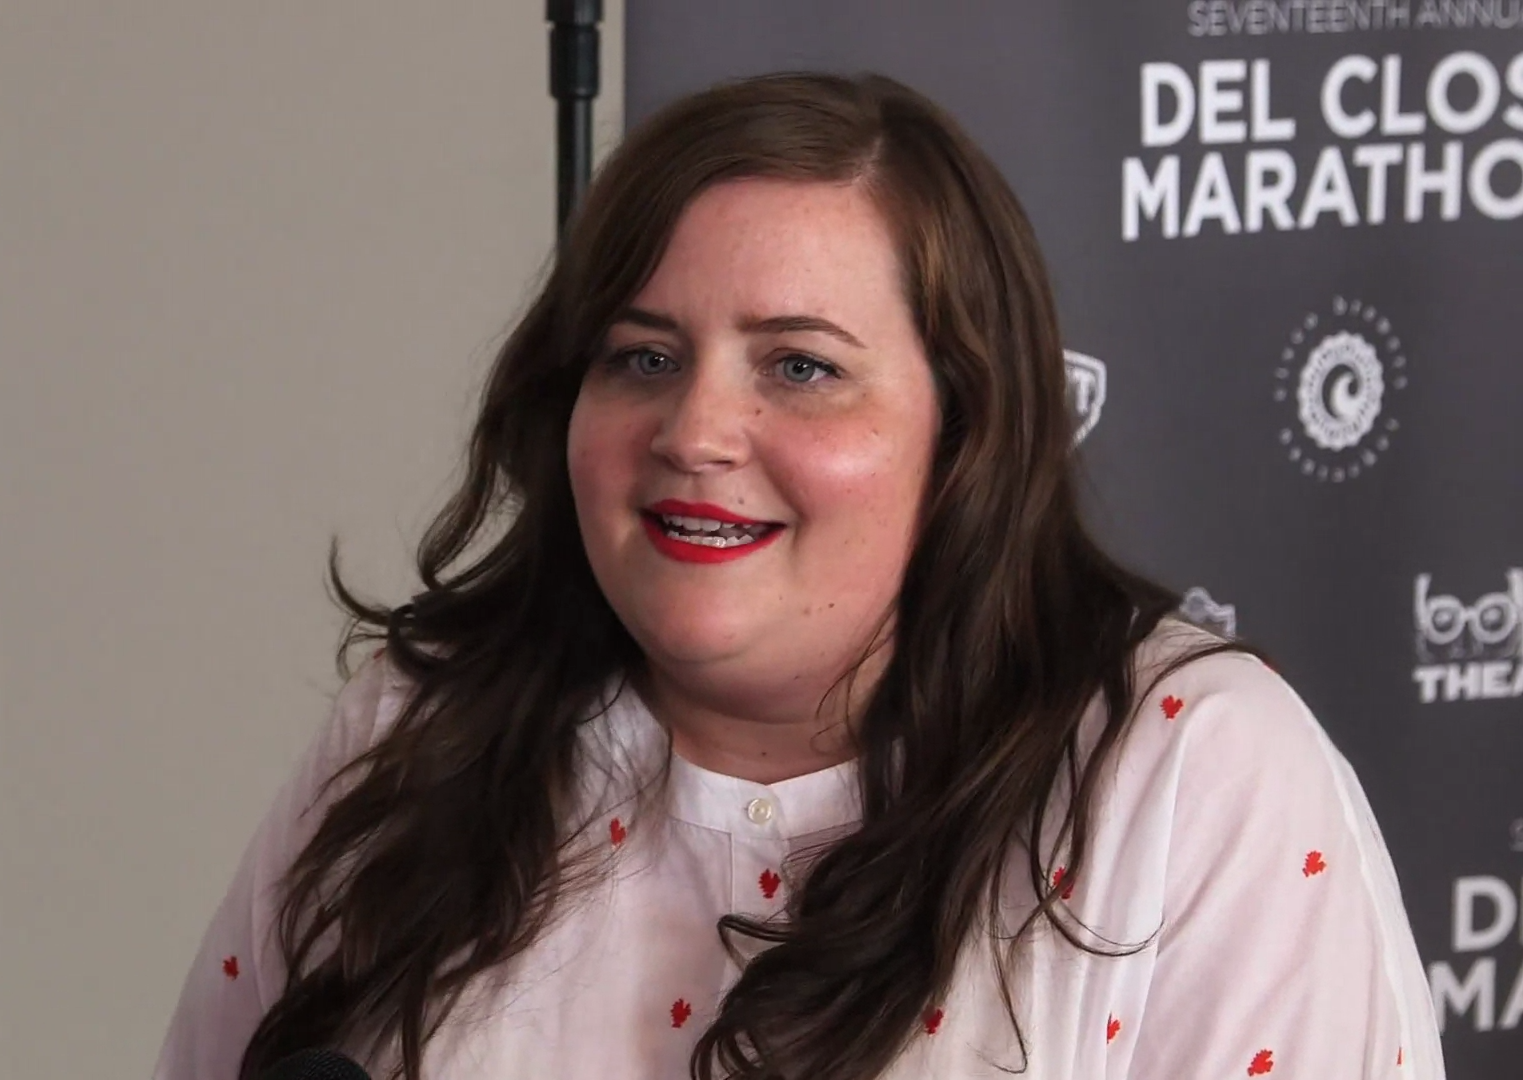 Aidy Bryant during an interview